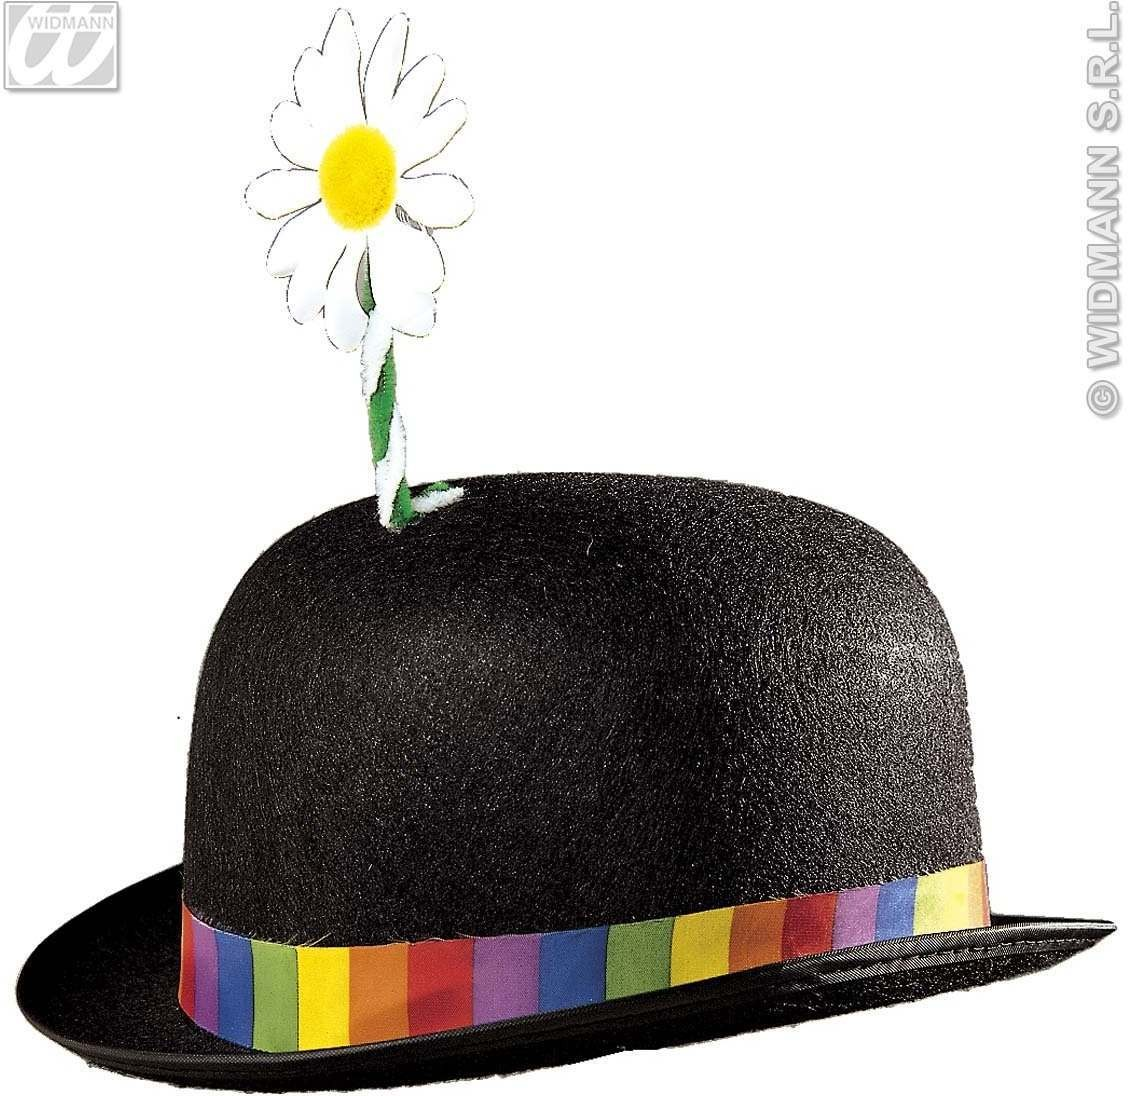 Clown Bowler Hat W/Flower 3 Cols - Fancy Dress (Clowns)